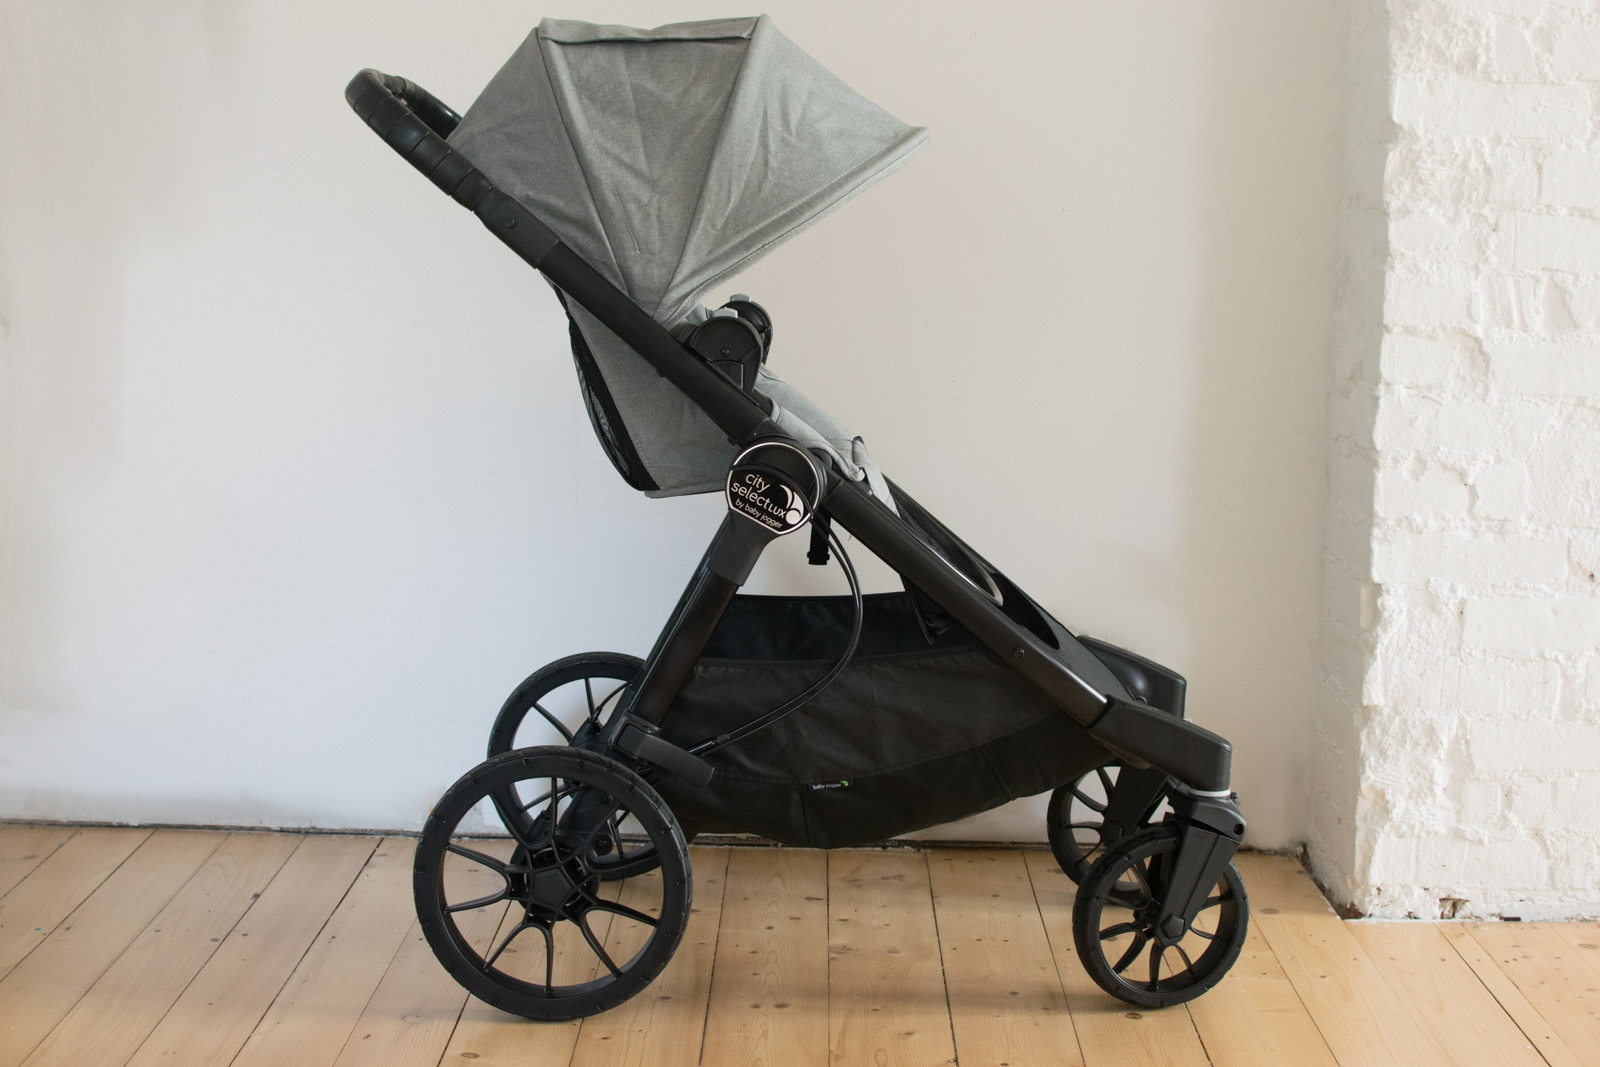 der baby jogger city select lux kombi kinderwagen im test. Black Bedroom Furniture Sets. Home Design Ideas